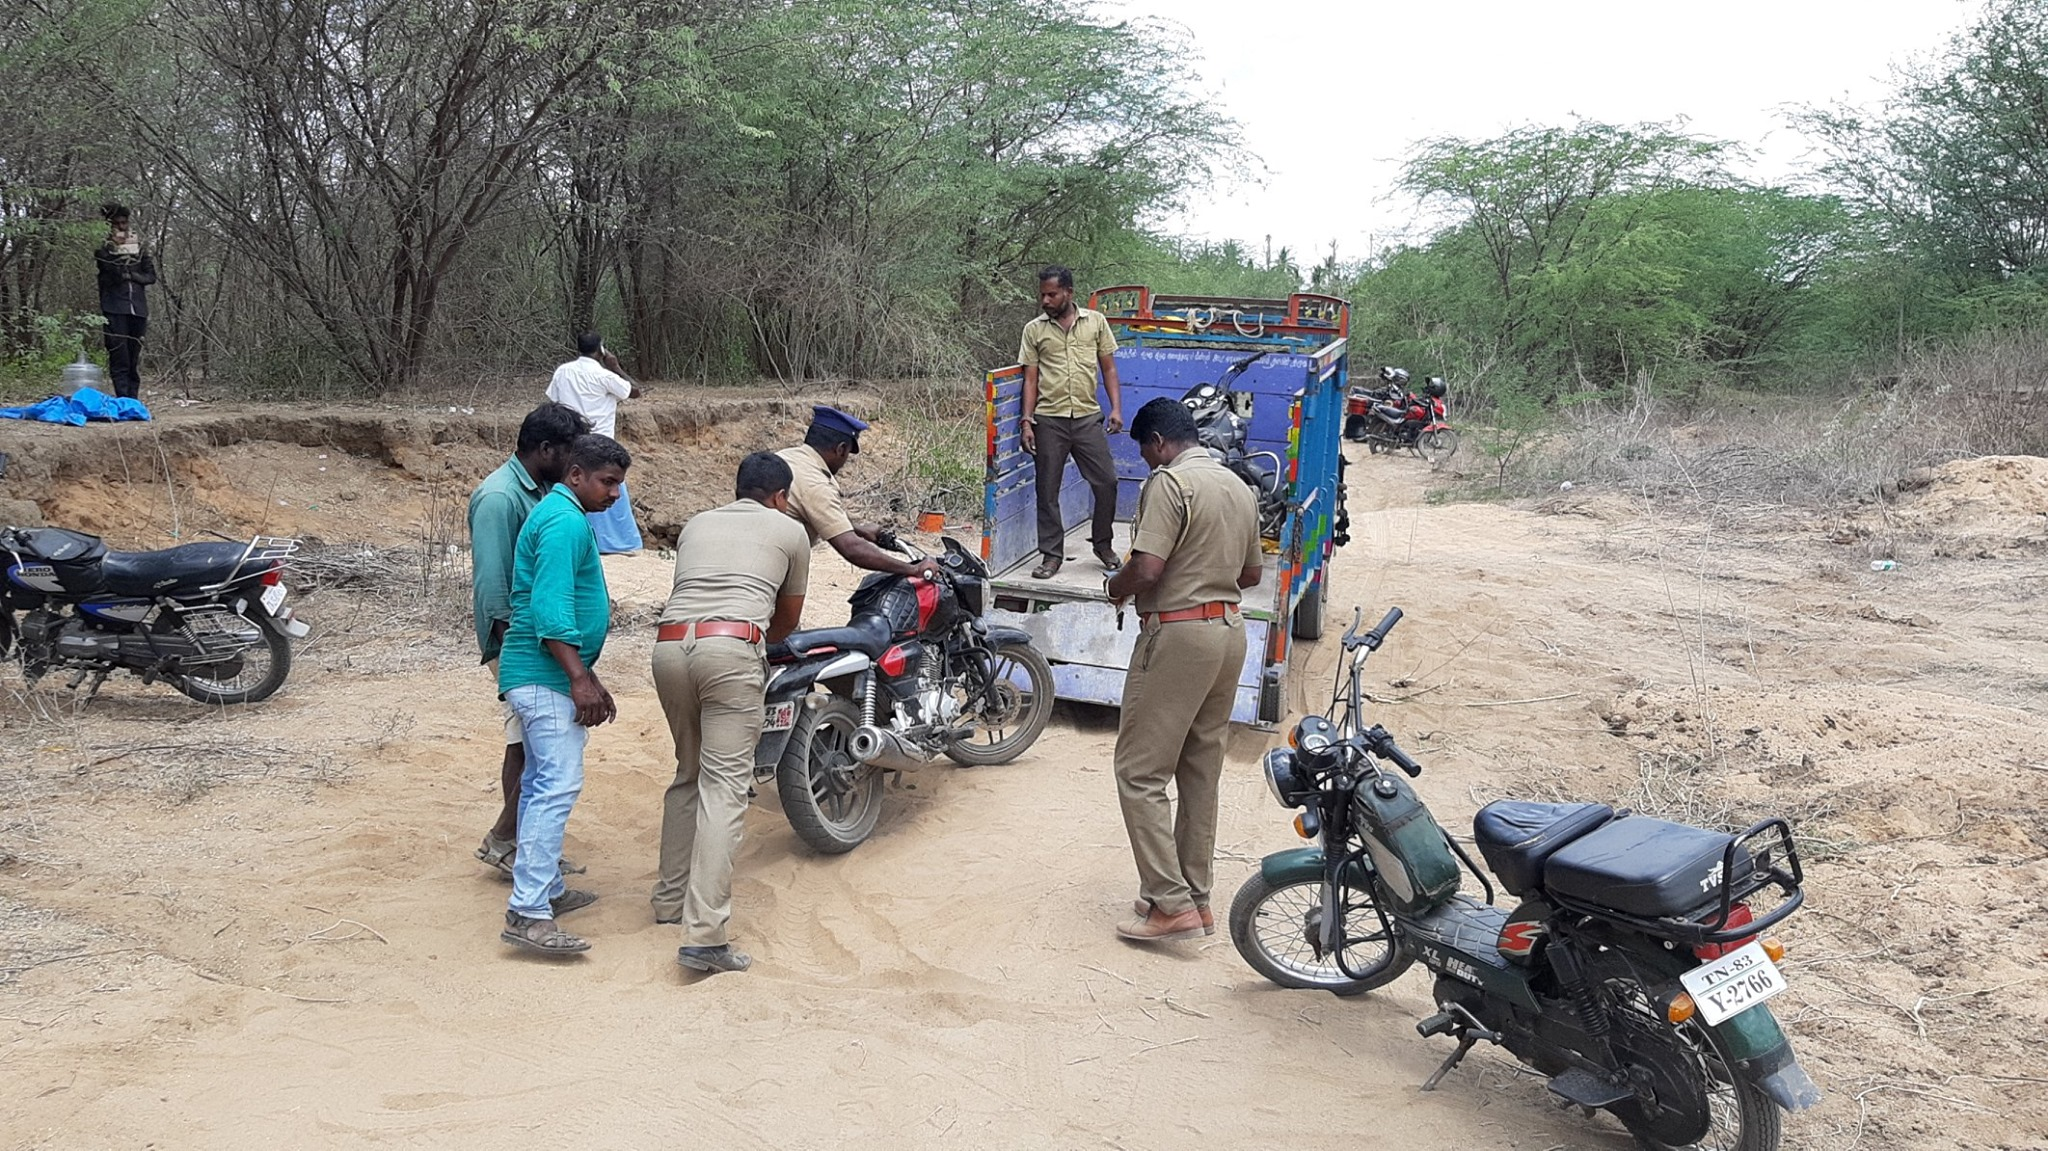 PALAR RIVER AT VELLORE SAND SMUGGLING ADMK SUPPORT AND POLICE DEAL